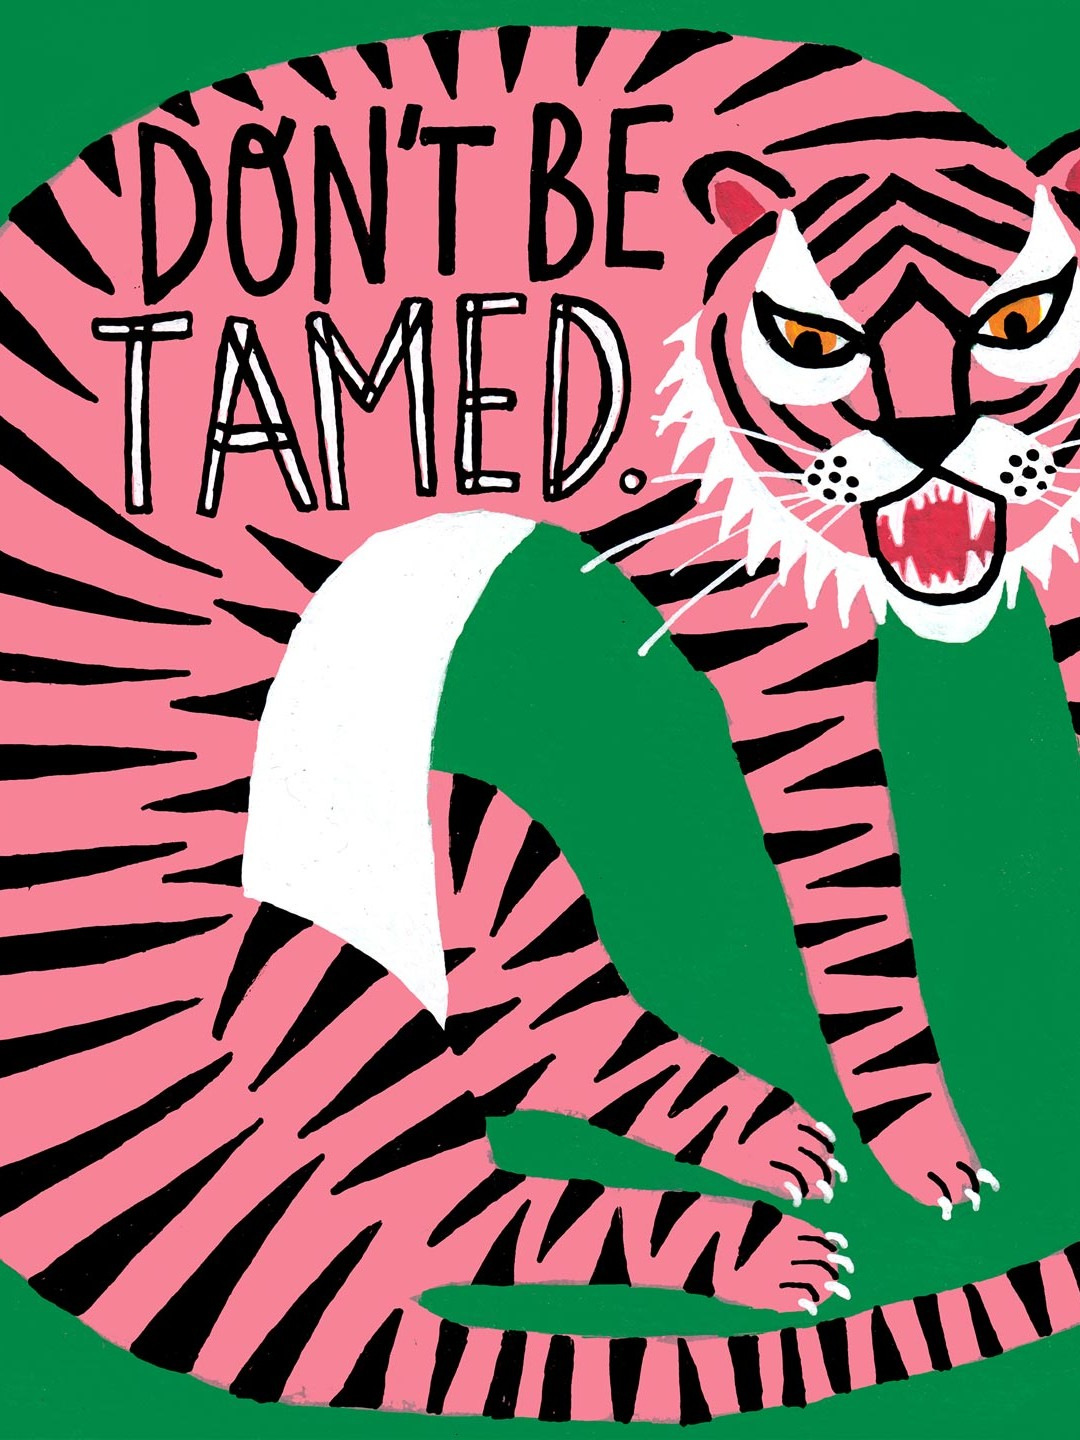 Don't be tamed